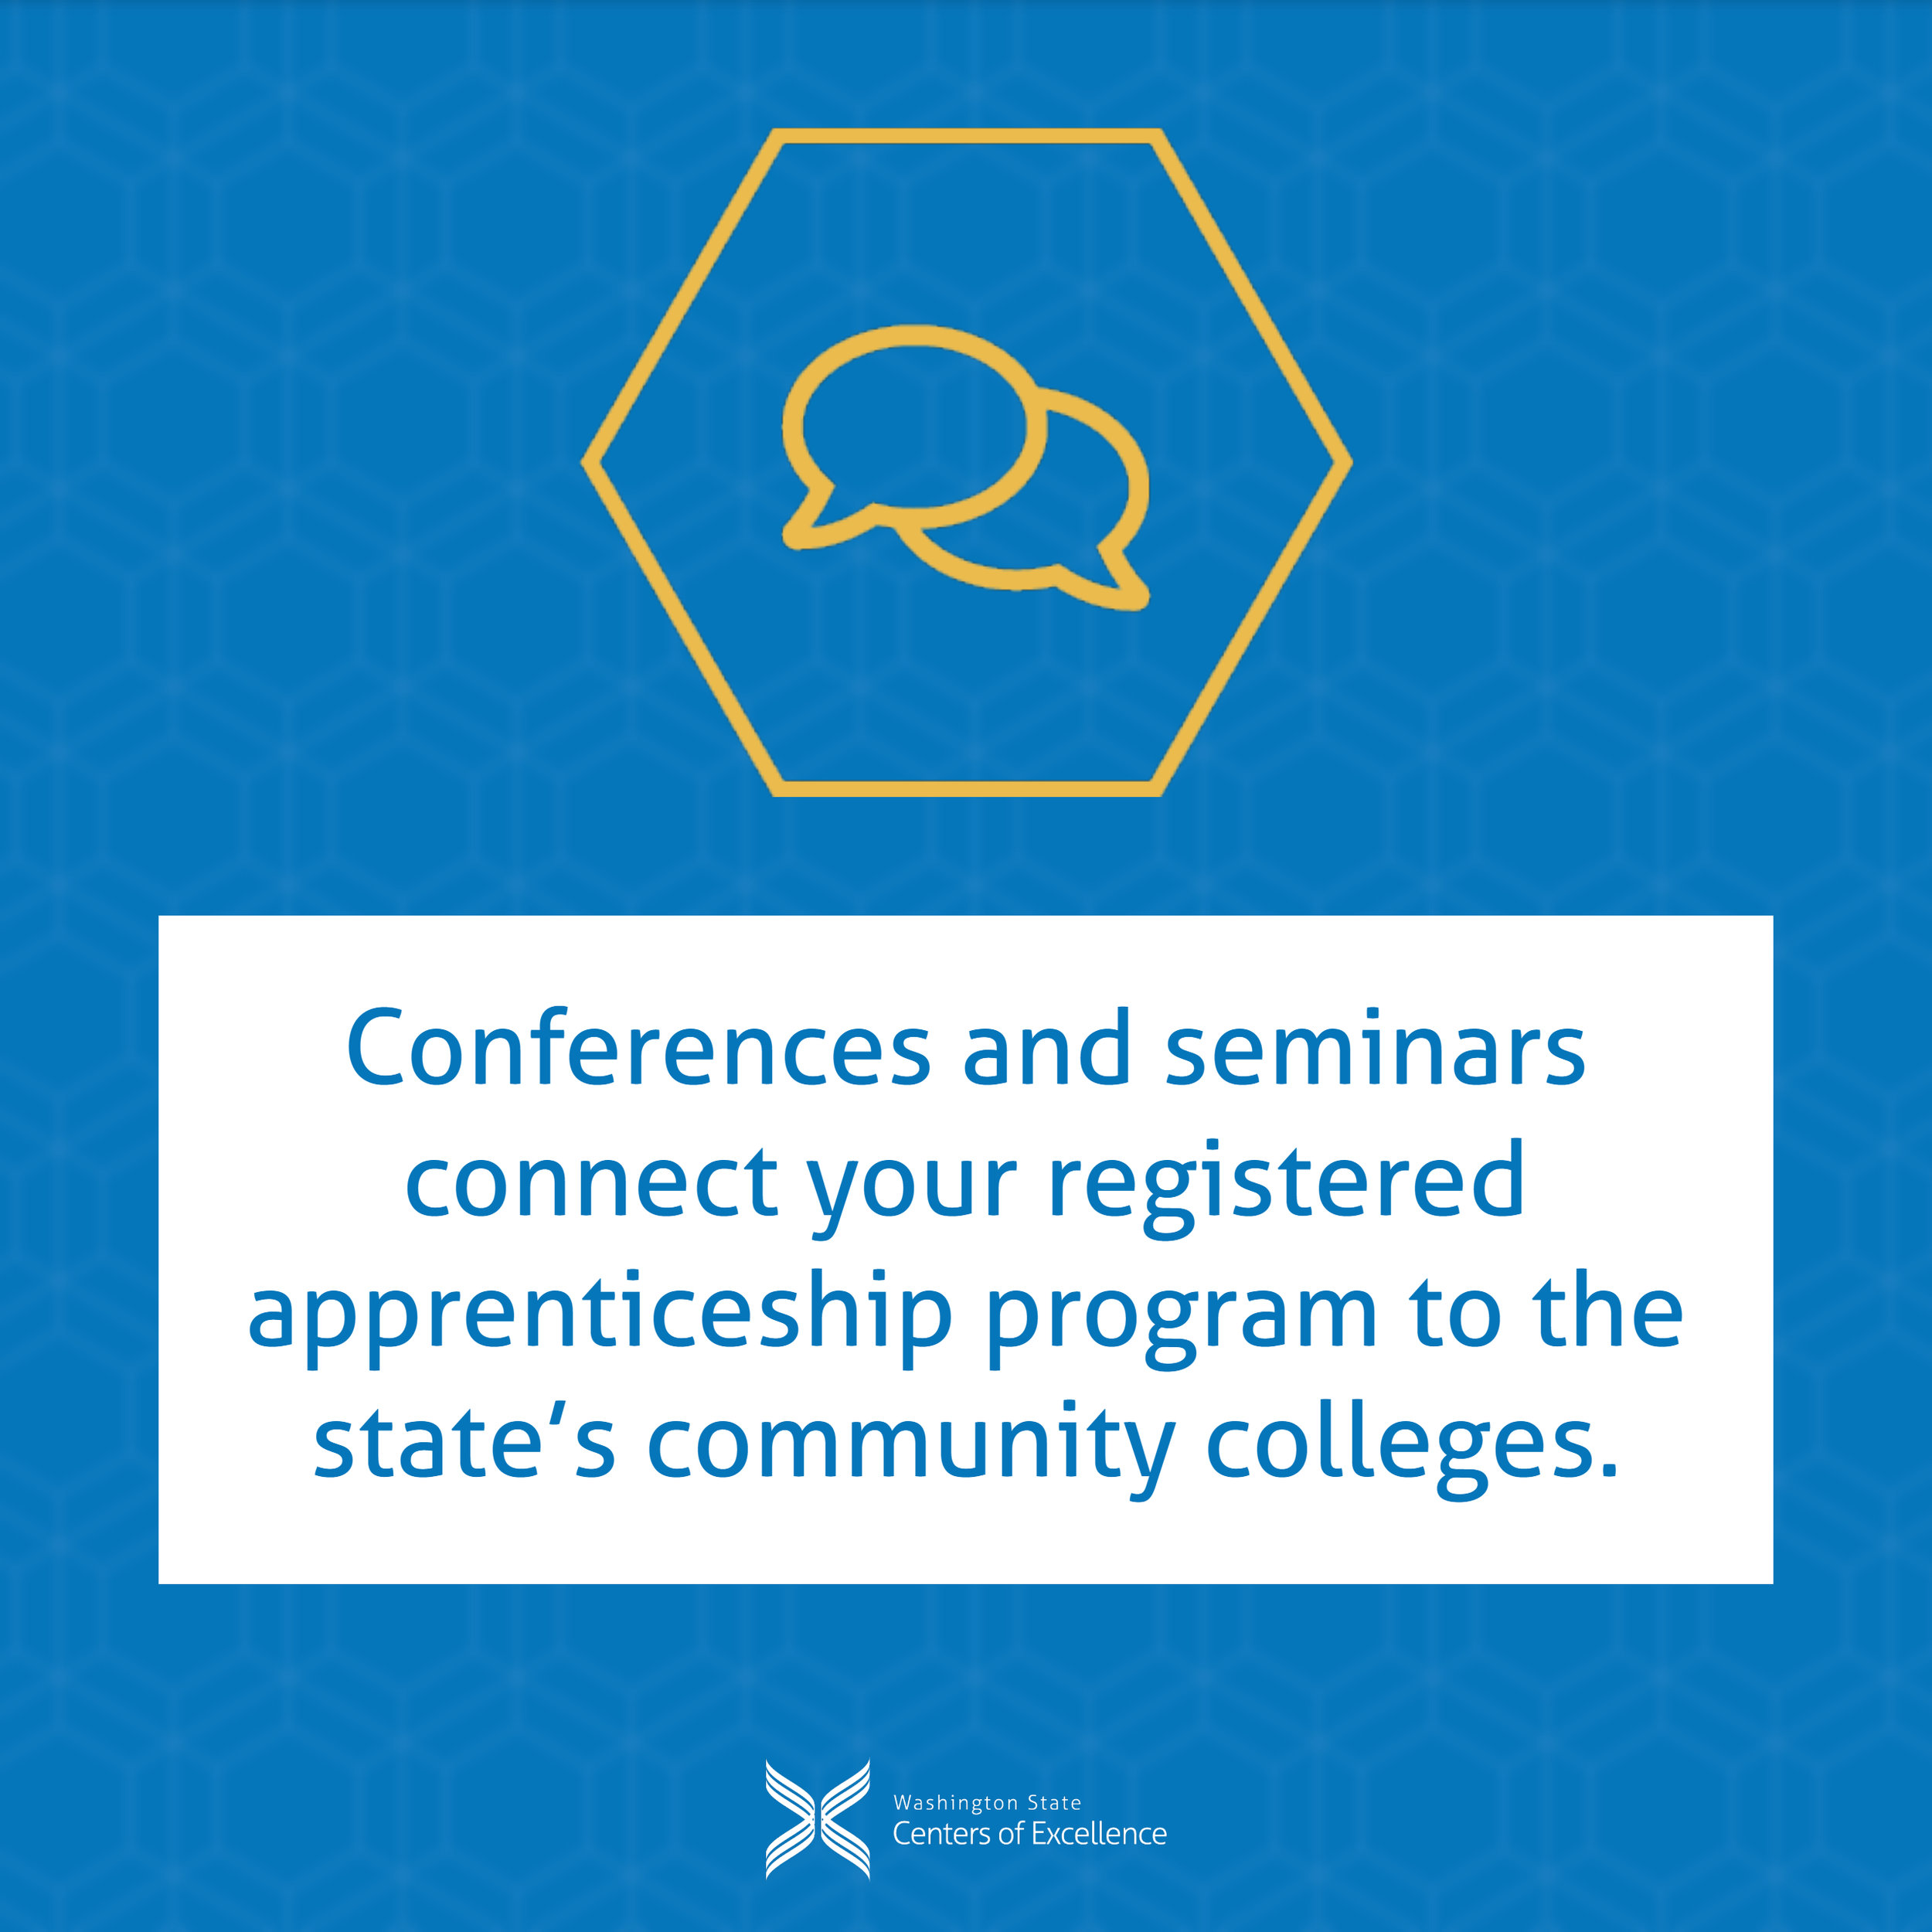 Conferences and seminars connect your registered apprenticeship program to the state's community colleges.